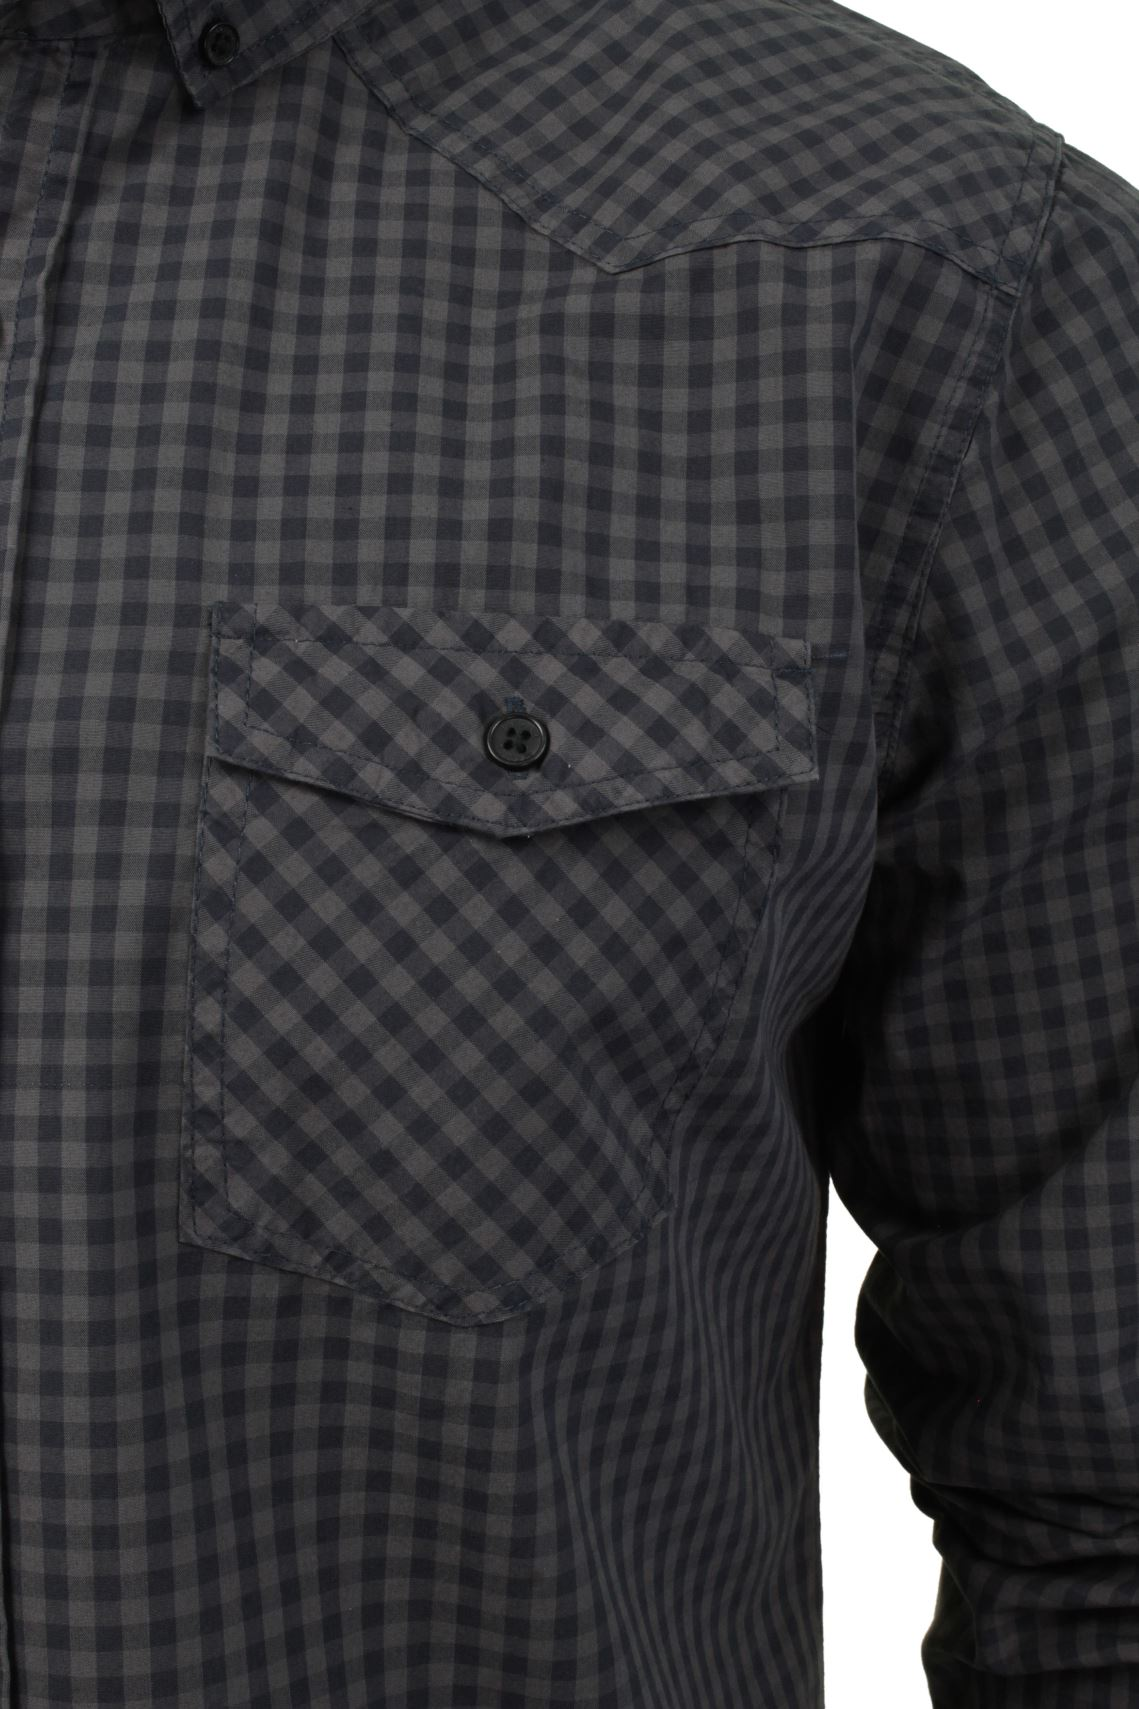 Mens-Check-Shirt-by-Smith-amp-Jones-039-Porticus-039-Long-Sleeved thumbnail 10